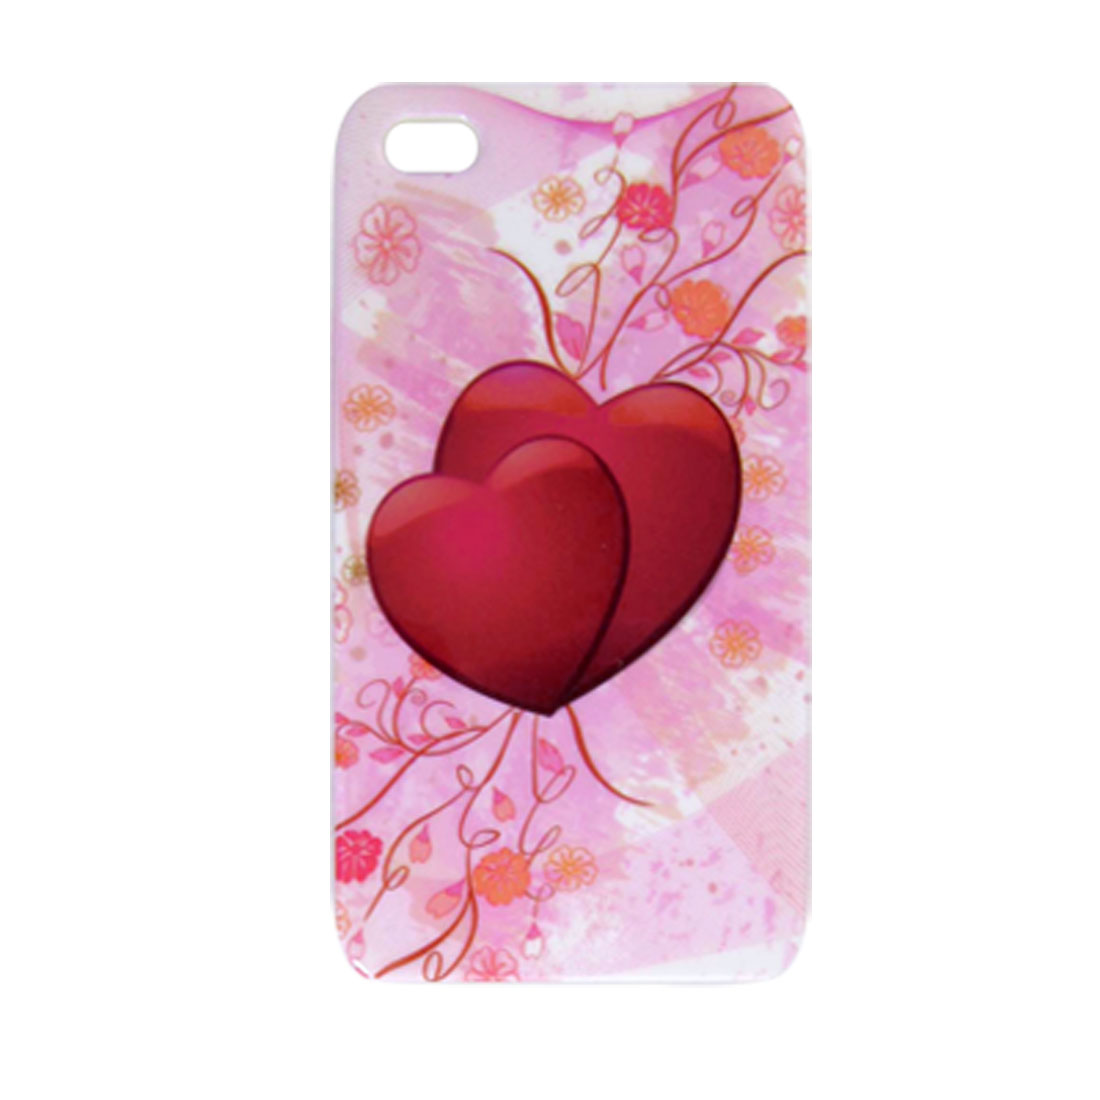 Hard Plastic Red Double Heart Protective Cover for iPhone 4 4G